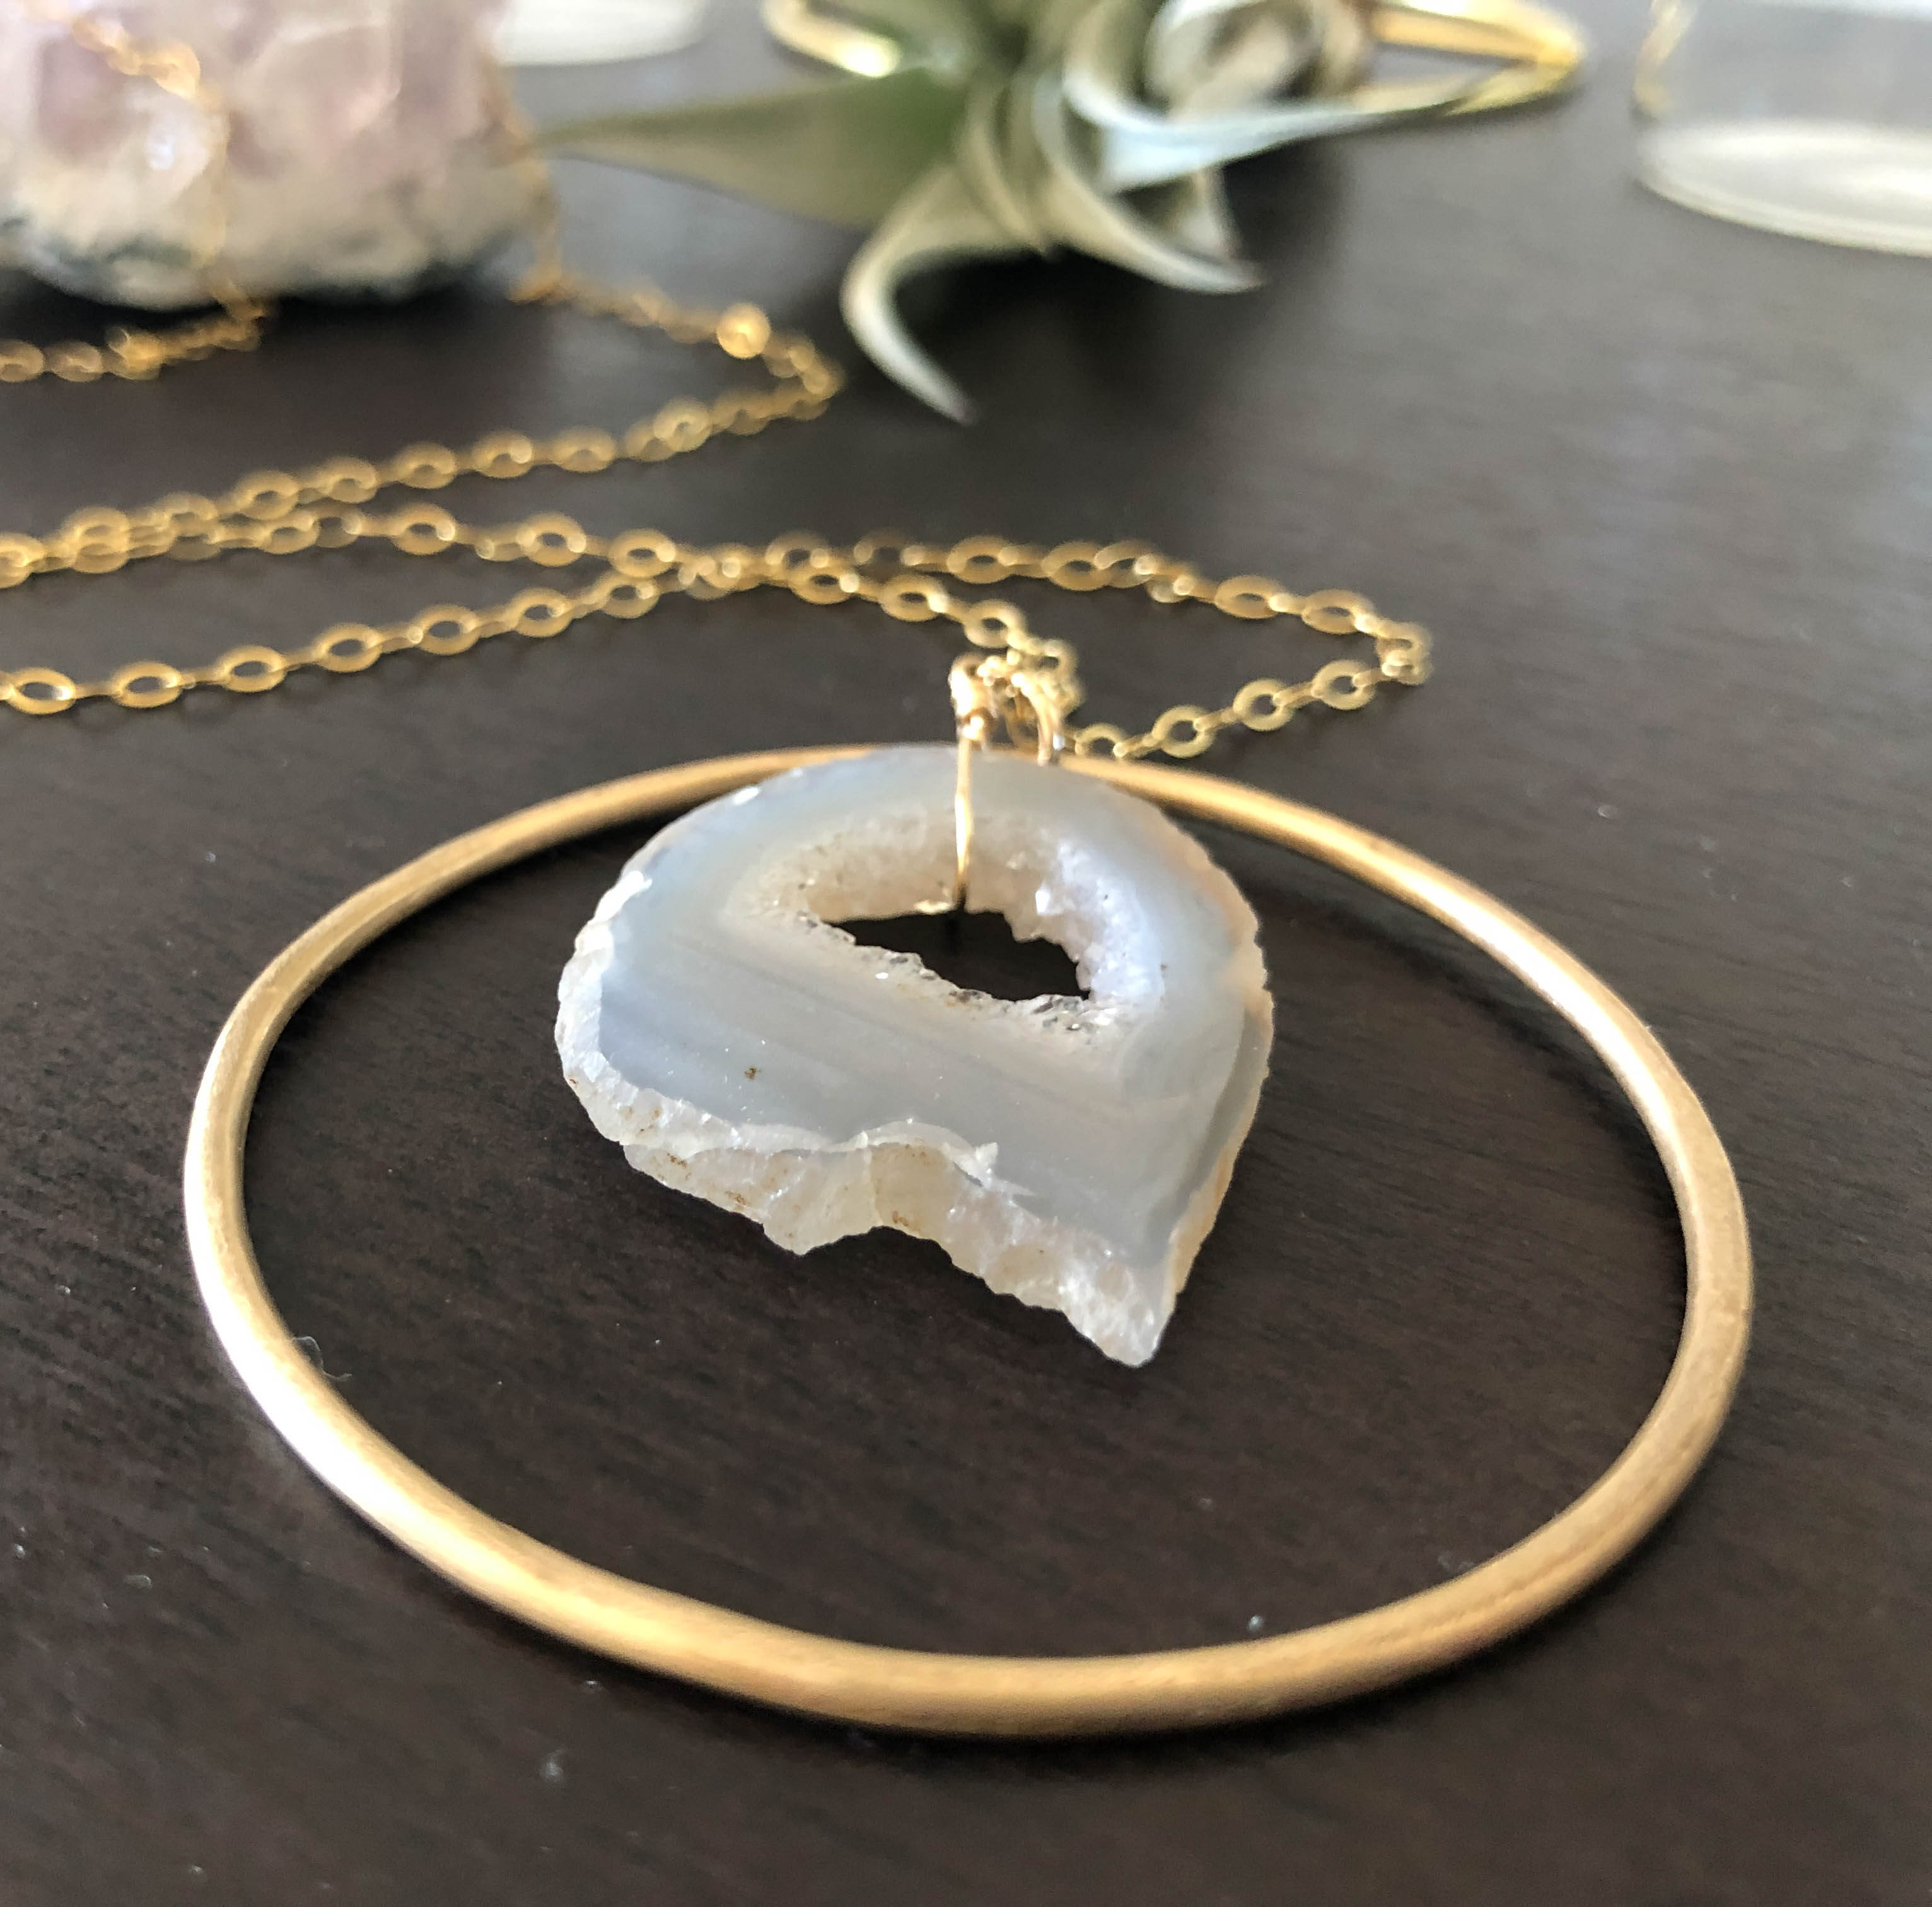 Large Pink Agate Slice Necklace Druzy Crystal Geode Slice Pendant XL Gold Drusy Stone Healing Crystals and Stones Jumbo Jewelry